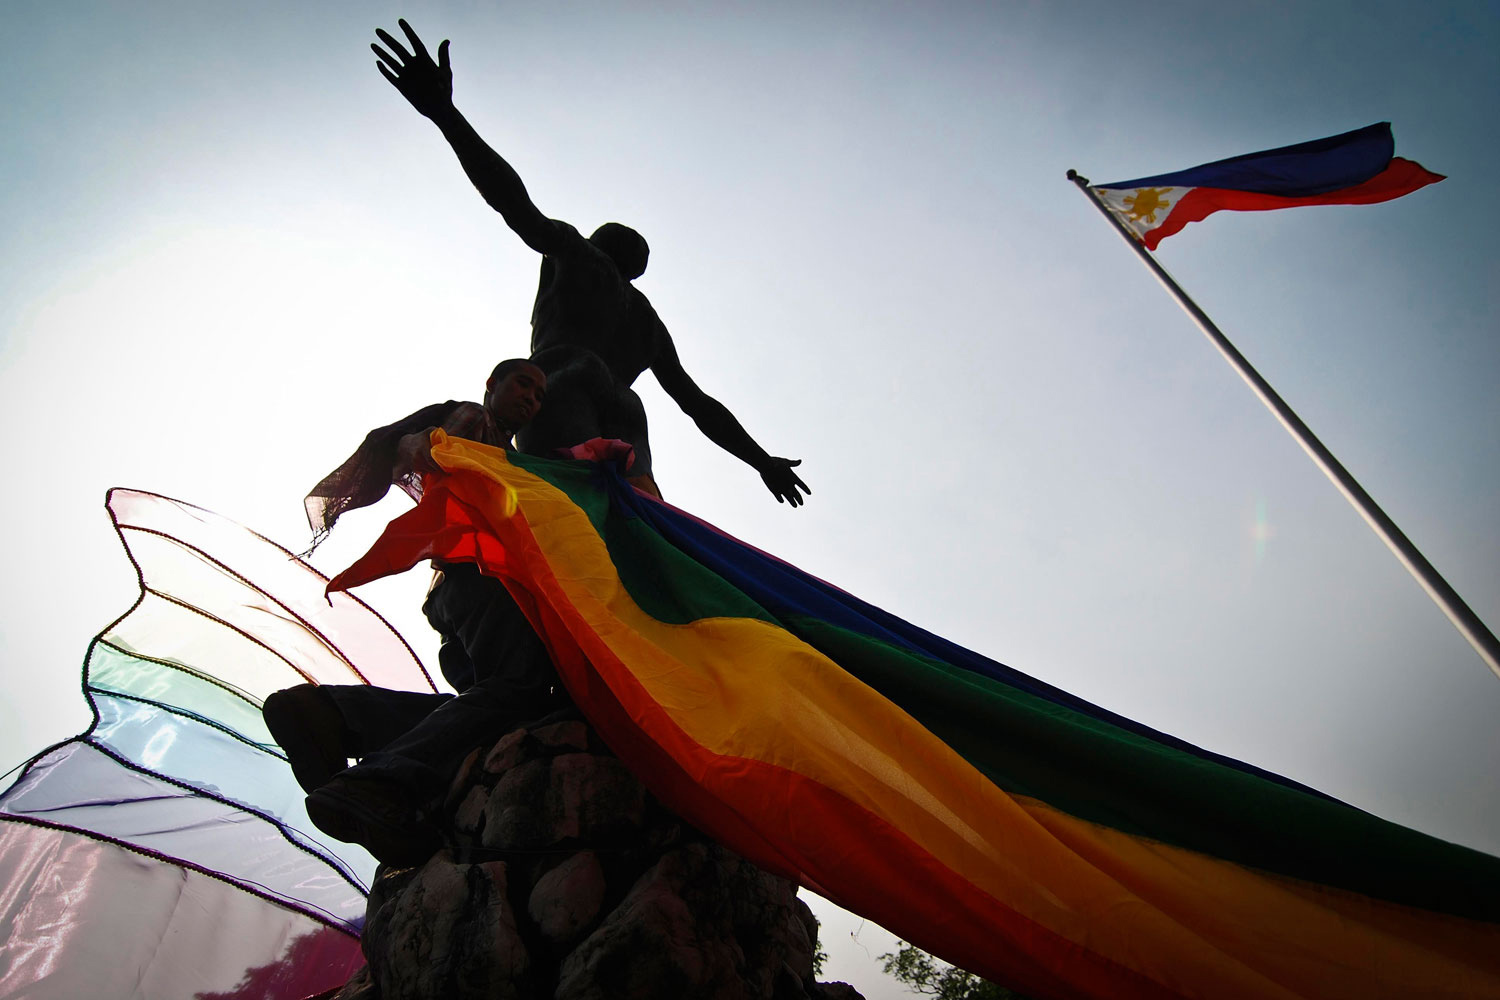 June 28, 2011. Students from the University of the Philippines in Manila march to protest an increase in hate crimes against lesbian, gay, bisexual and transgender (LGBT) people.